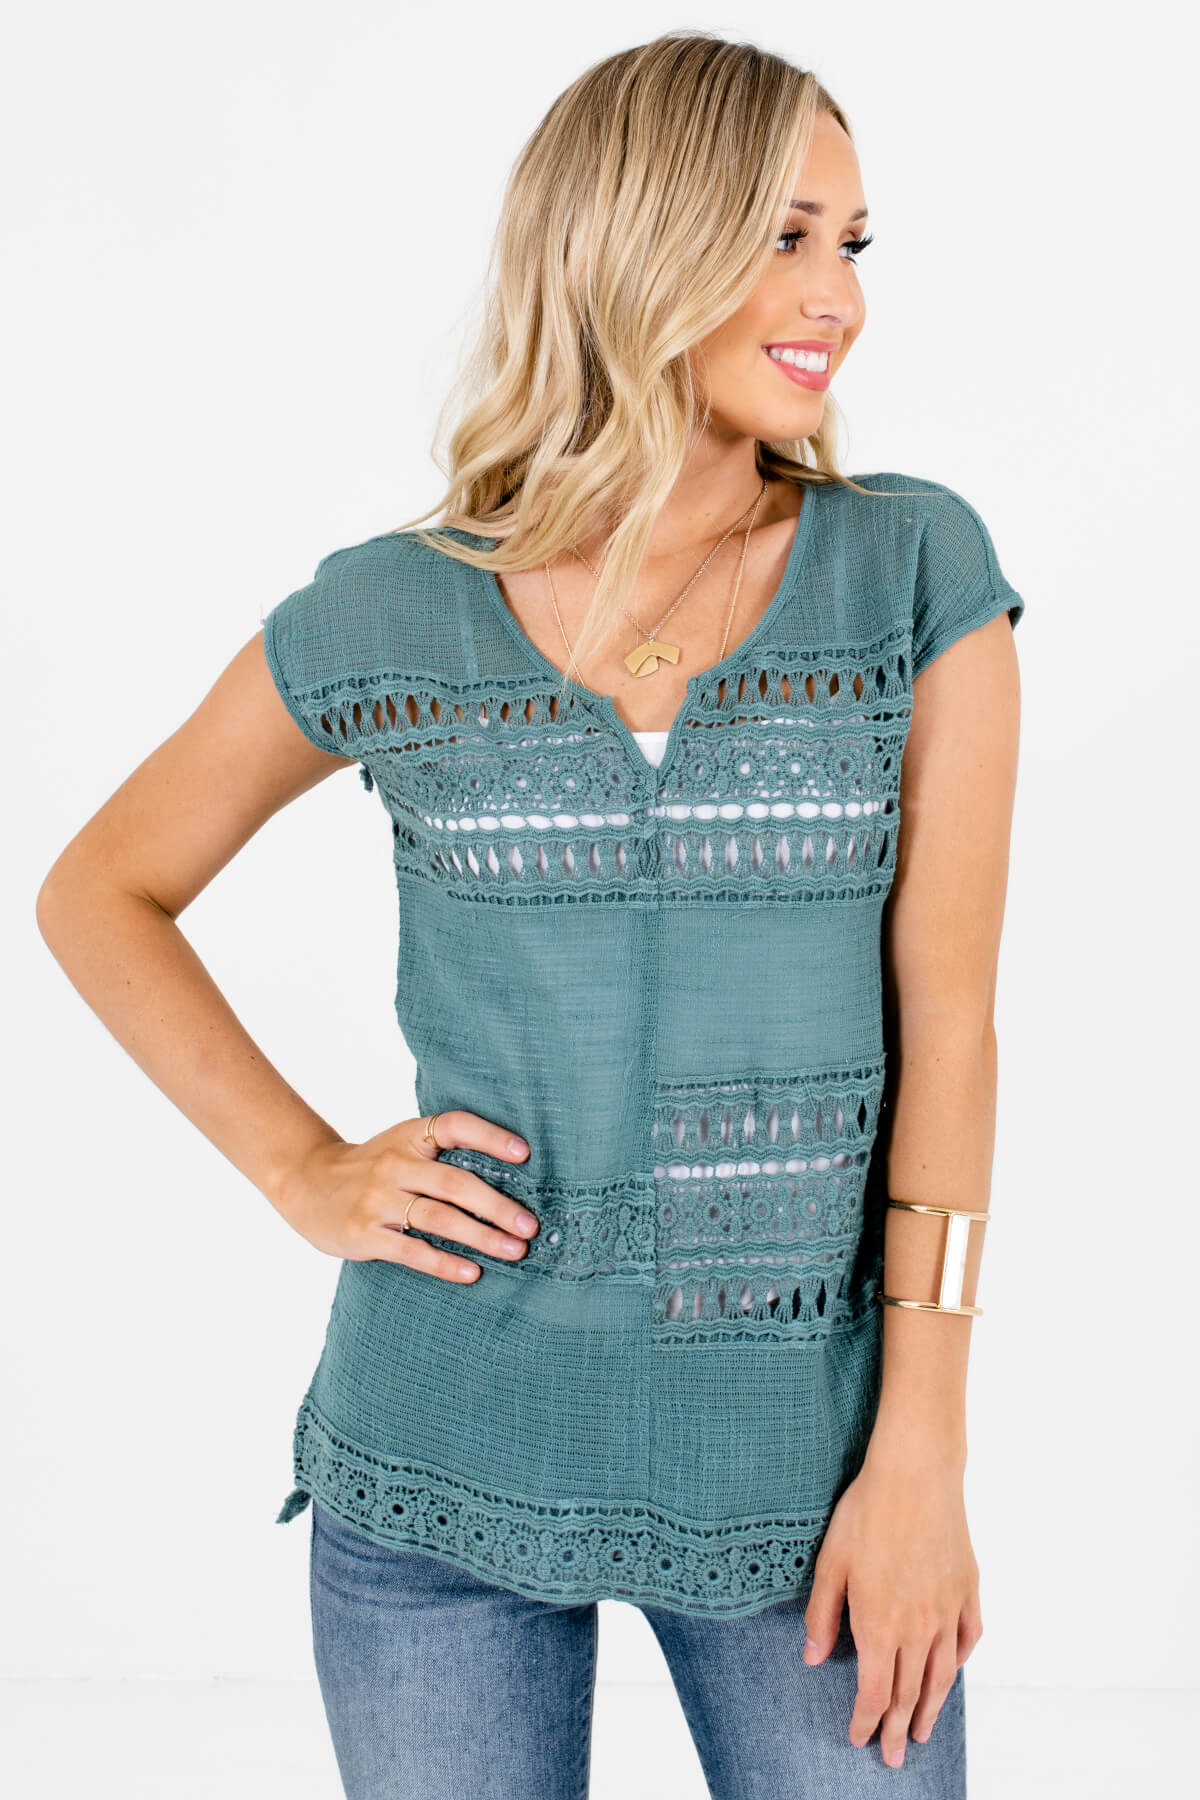 Blue Semi-Sheer Crochet Material Boutique Tops for Women